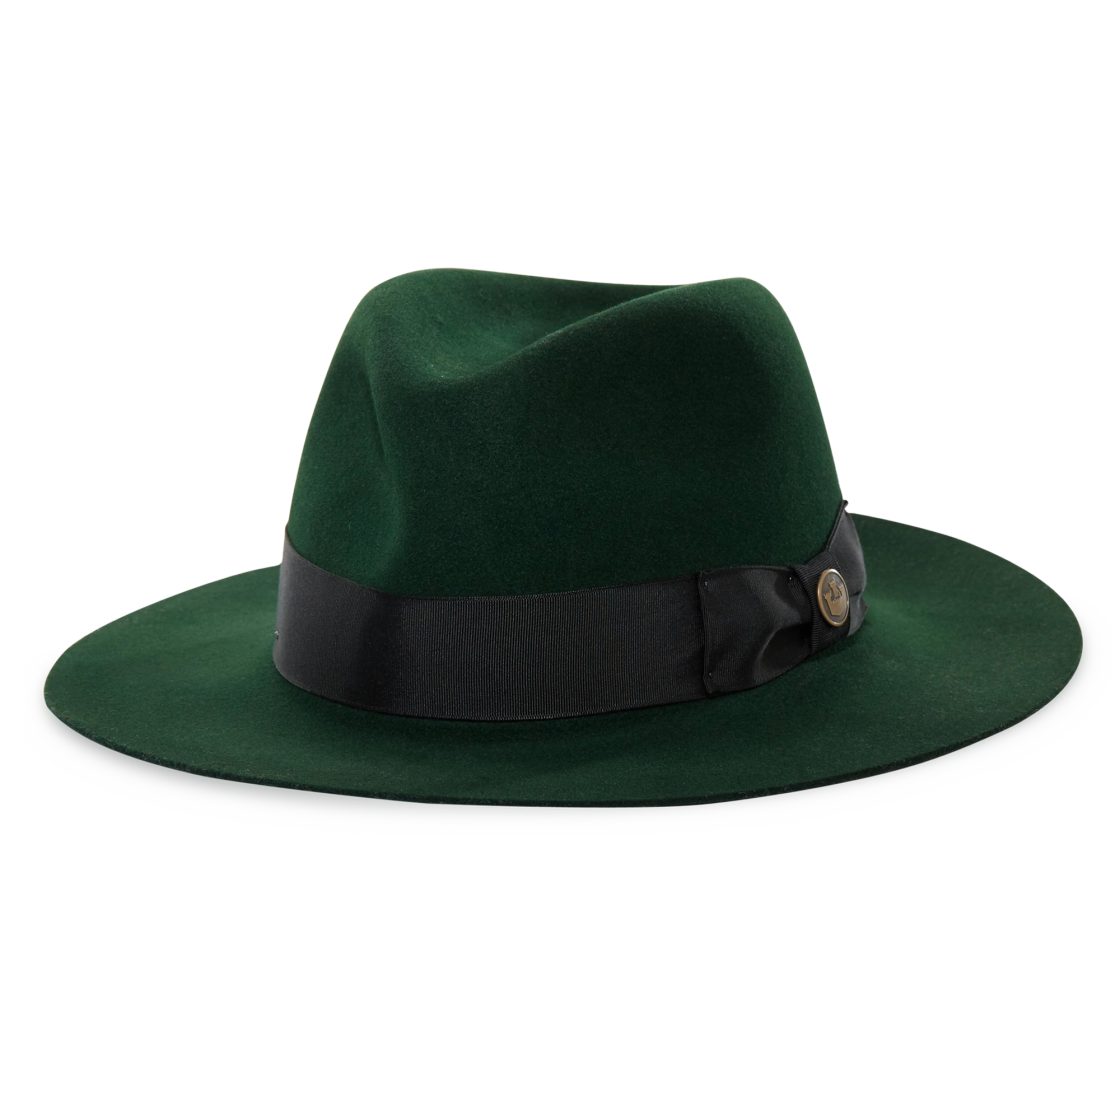 County Line Wide Brim Fedora hat in Forest Green 3cb84b1e96c